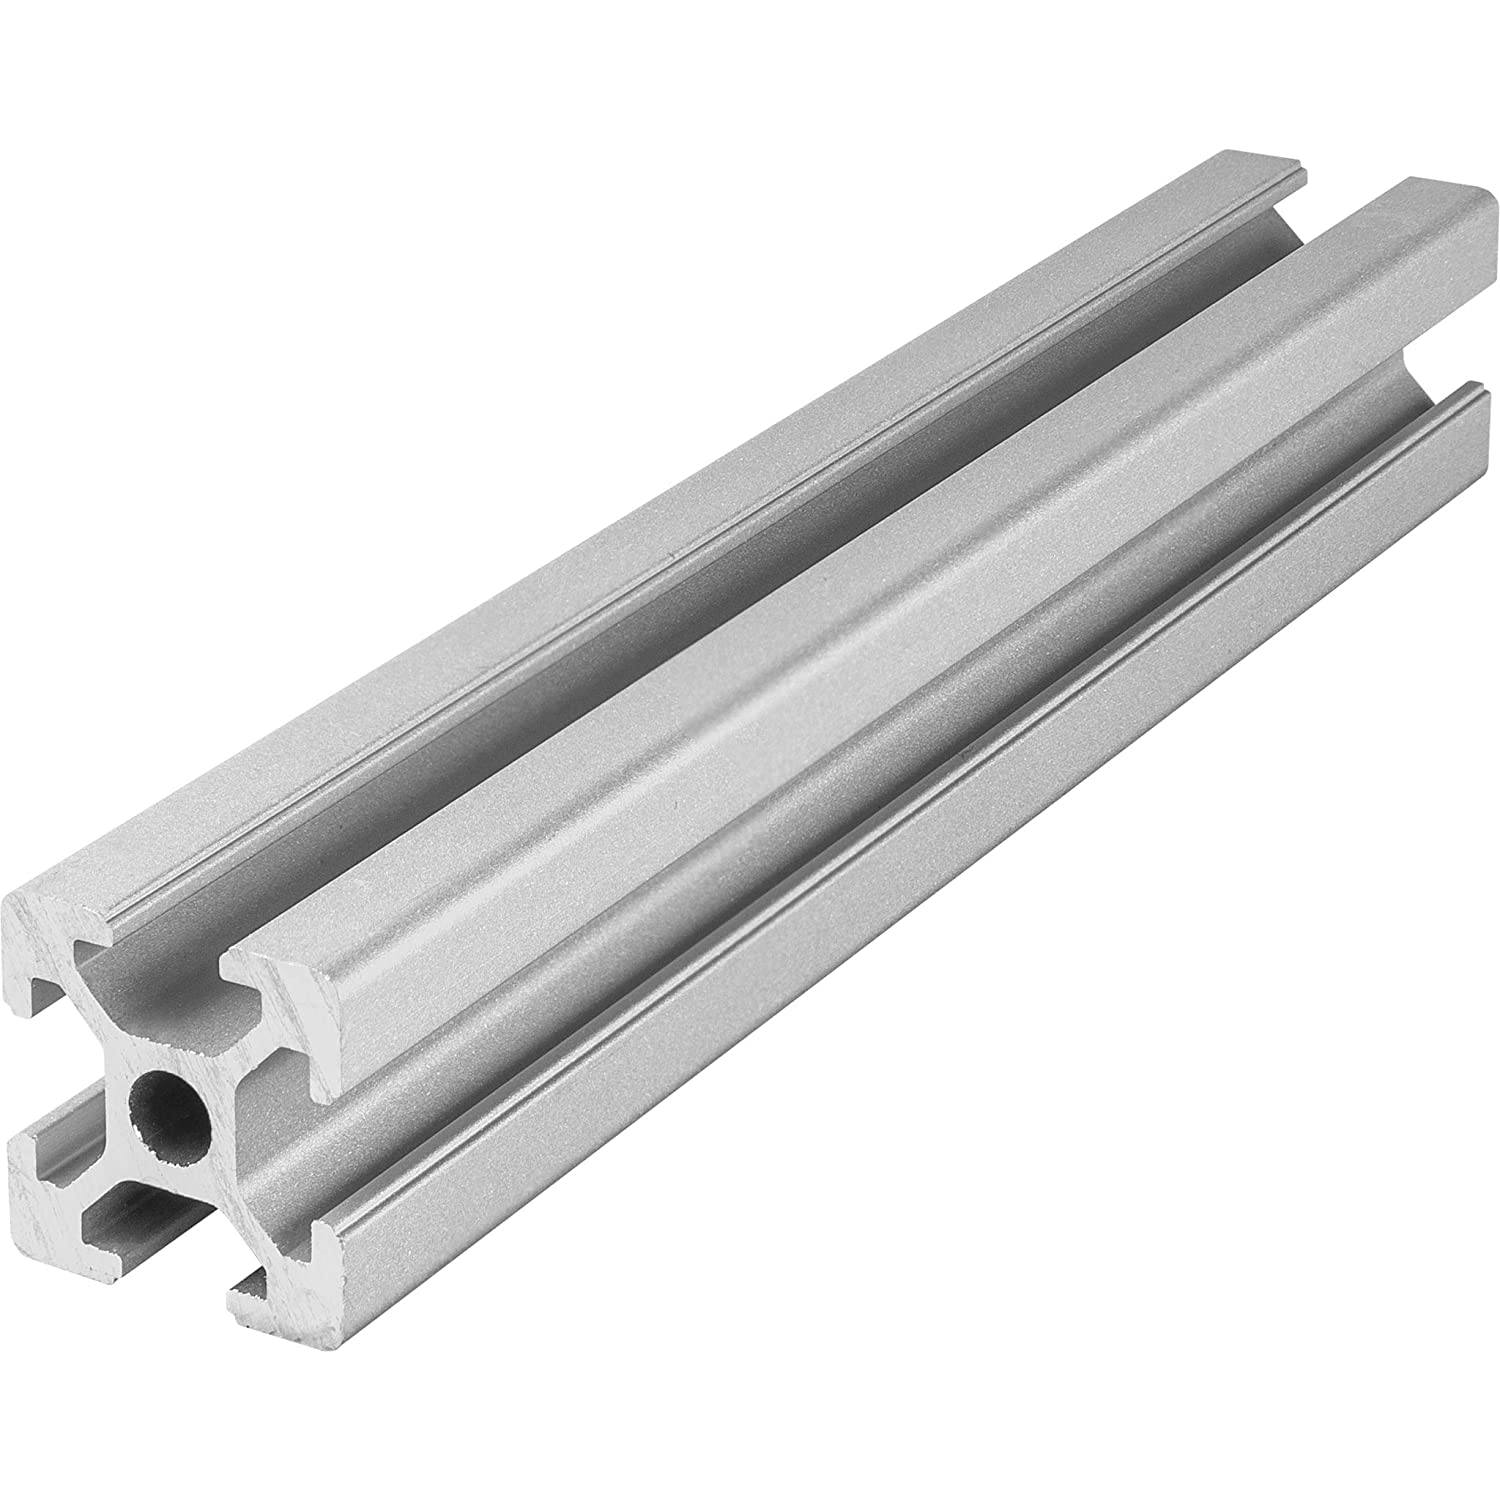 Aluminium Extrusion Profile 20x20 T-Slot 6 mm (1100 mm) LED-Glass